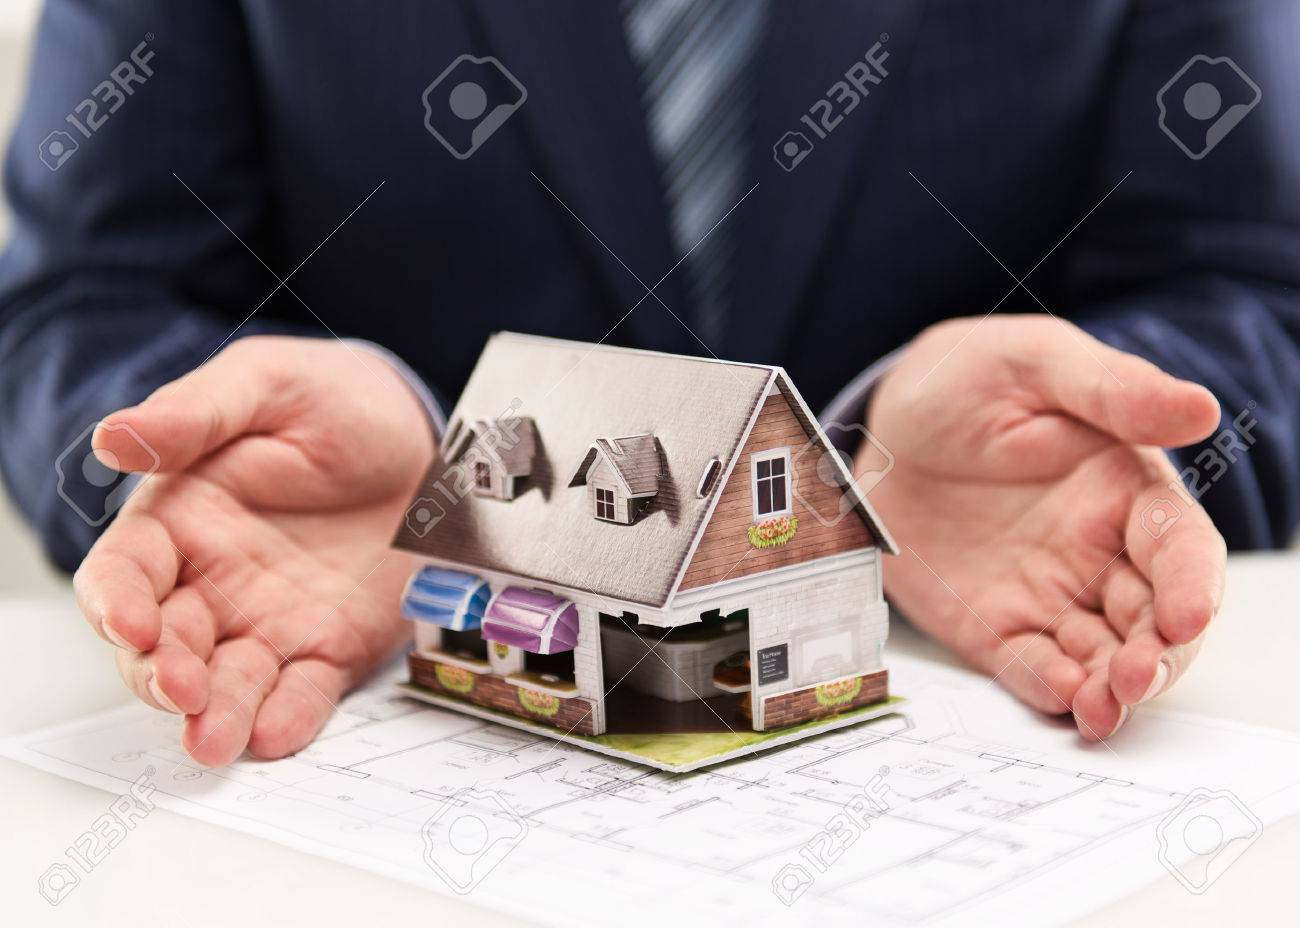 Male house agent showing family residence model to customers. Real estate agreement concept. Shallow depth of field. - 39598924